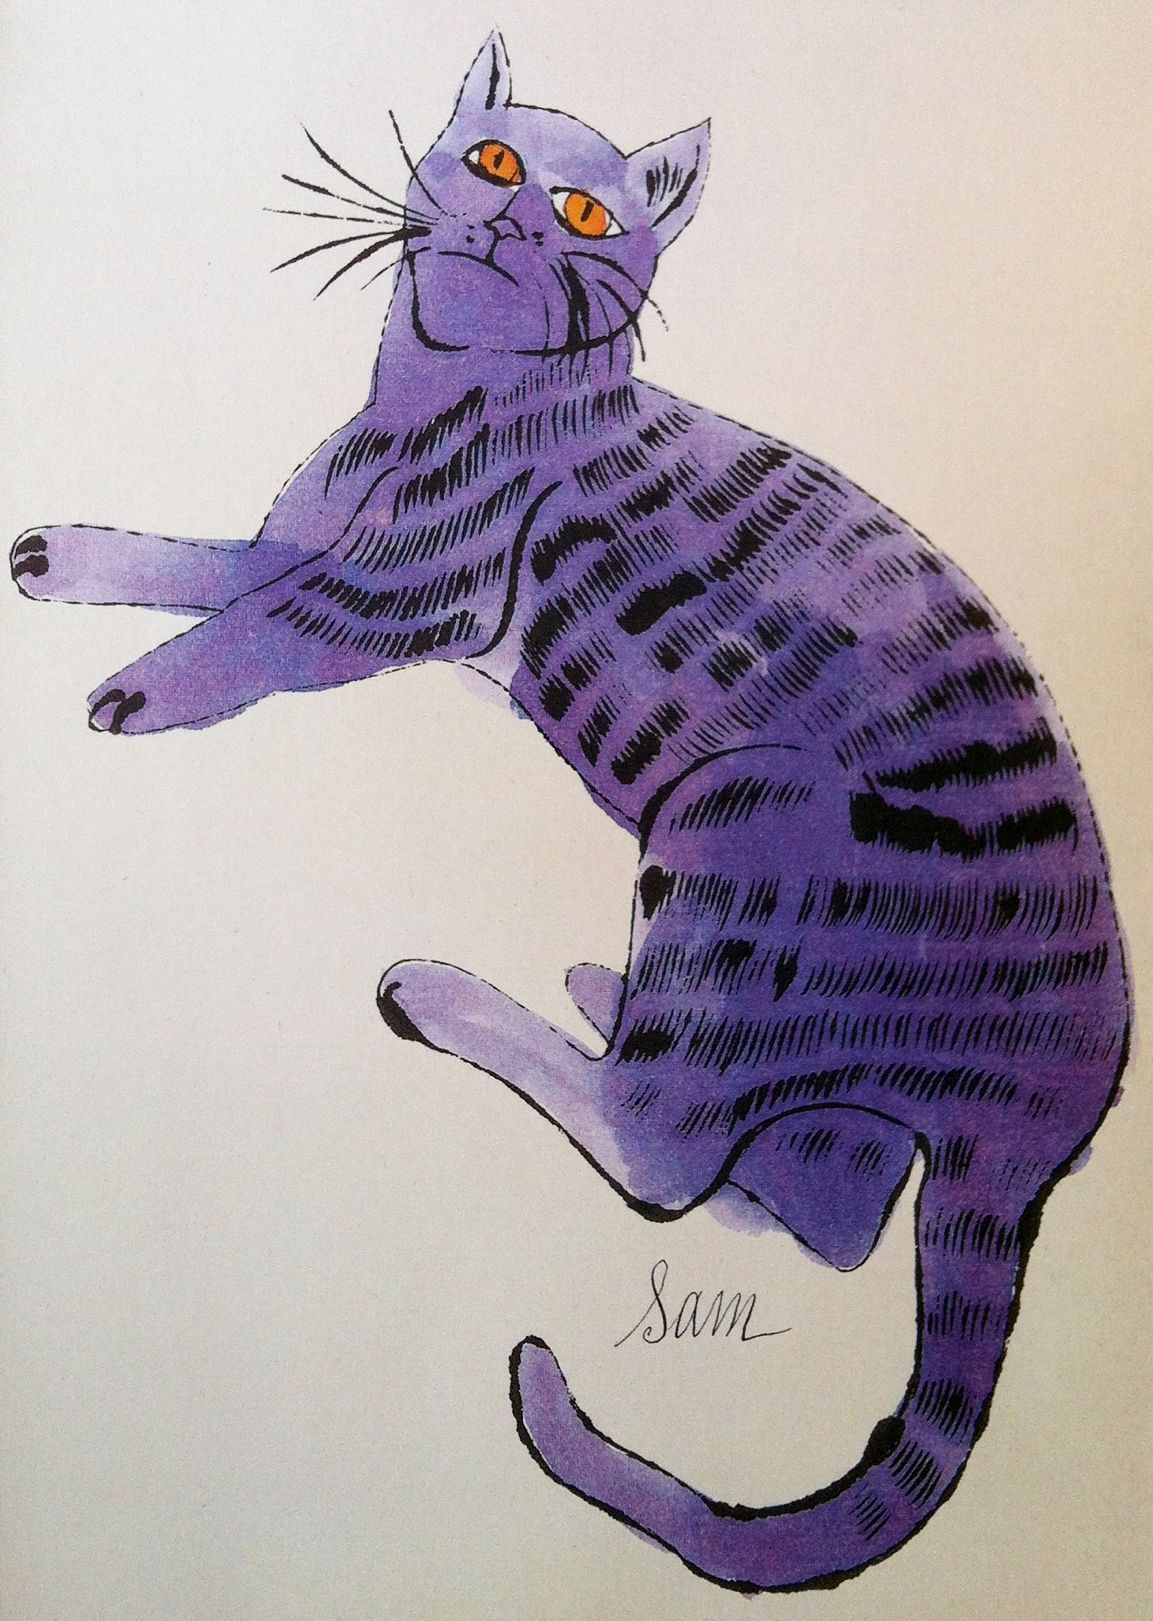 Color cats like - Andy Warhol I Like This Quirky Watercolor So Much Better Than His Famous Color